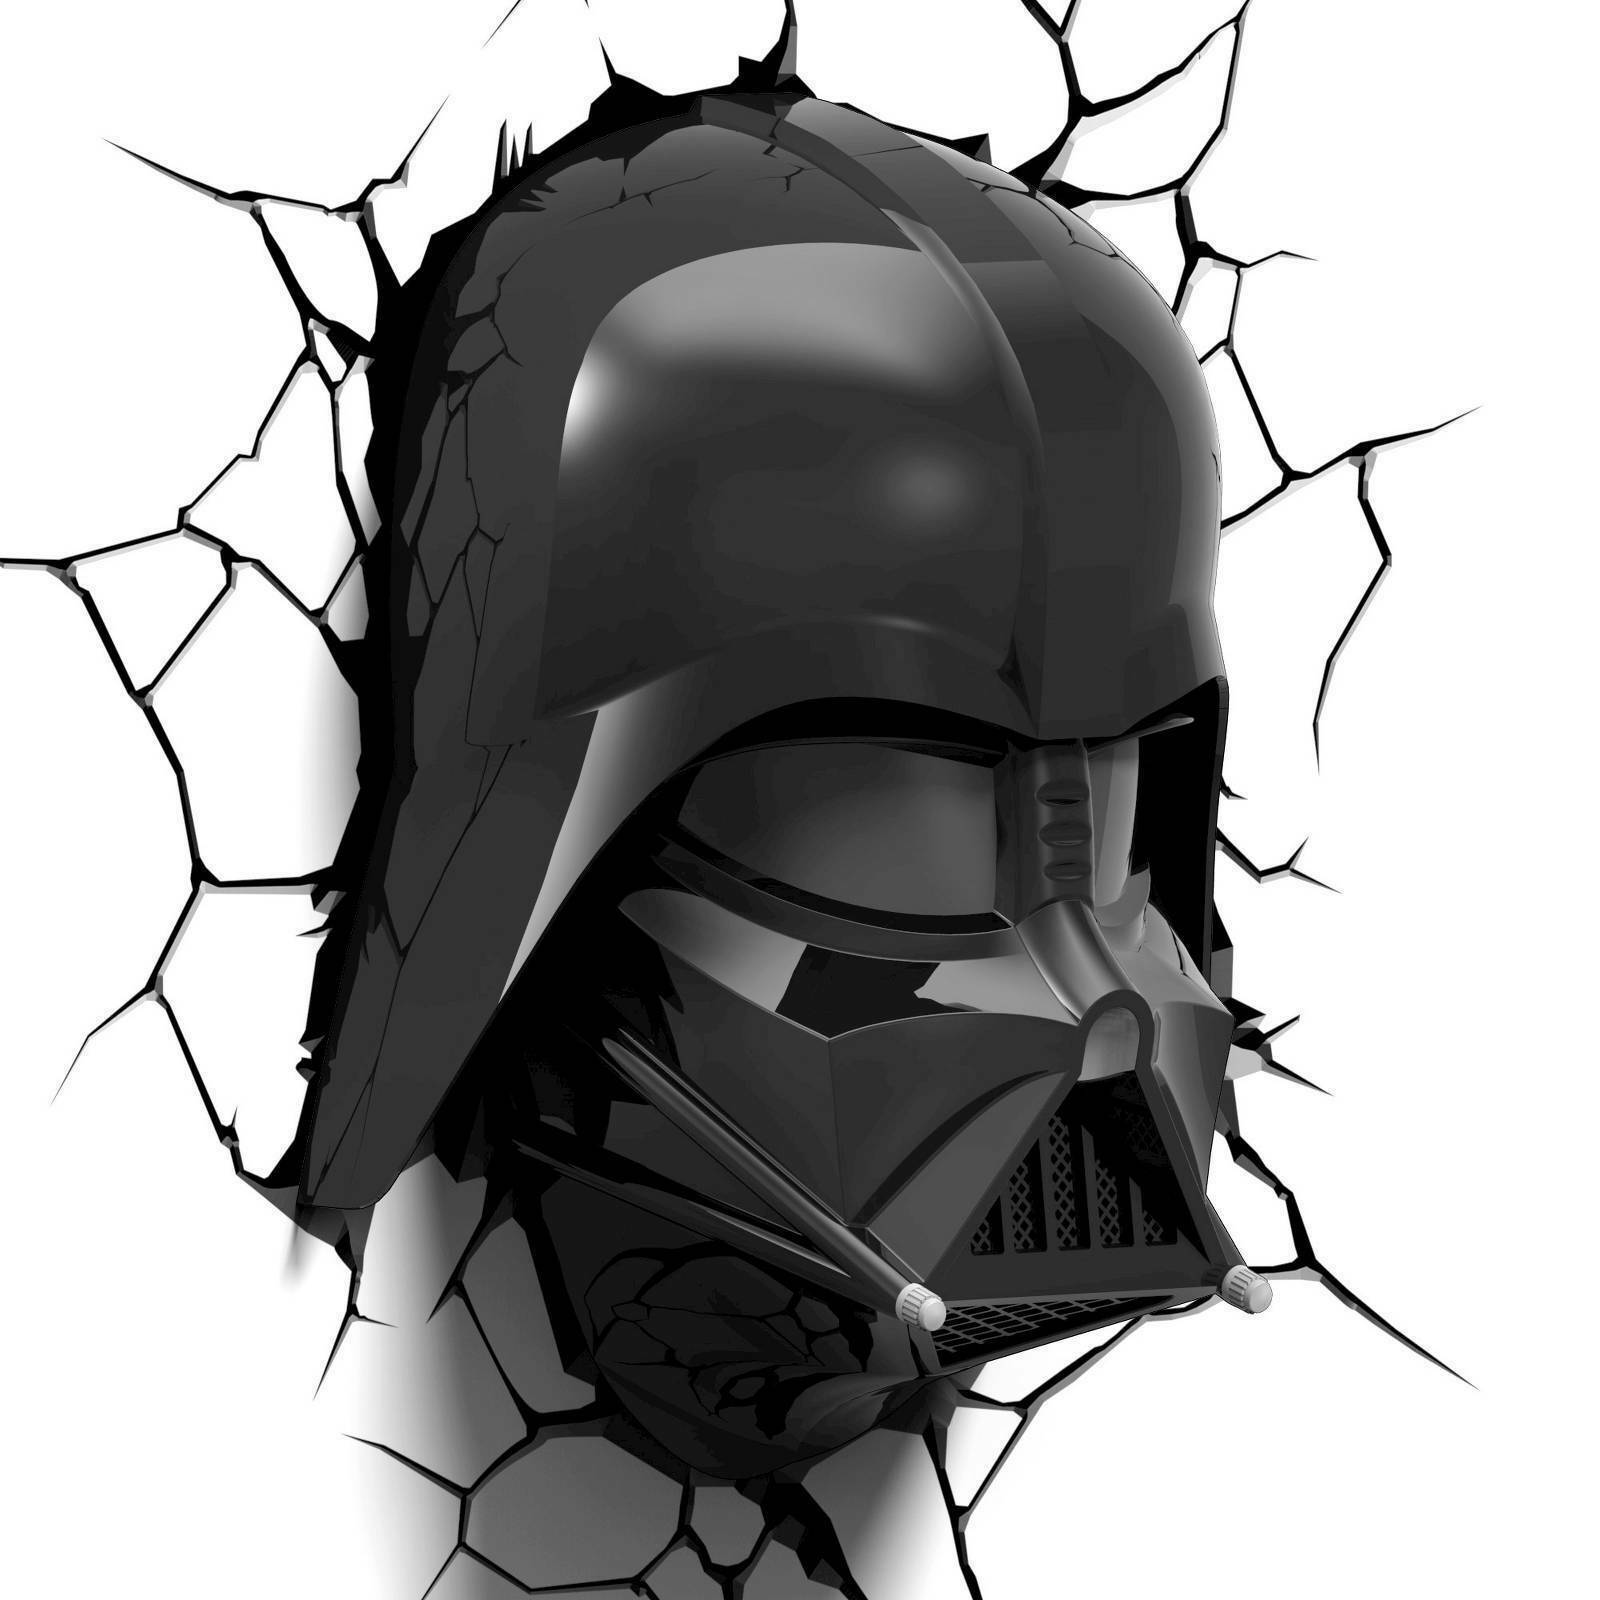 how to draw darth vader mask darth vader helmet drawing free download on clipartmag how vader draw darth mask to